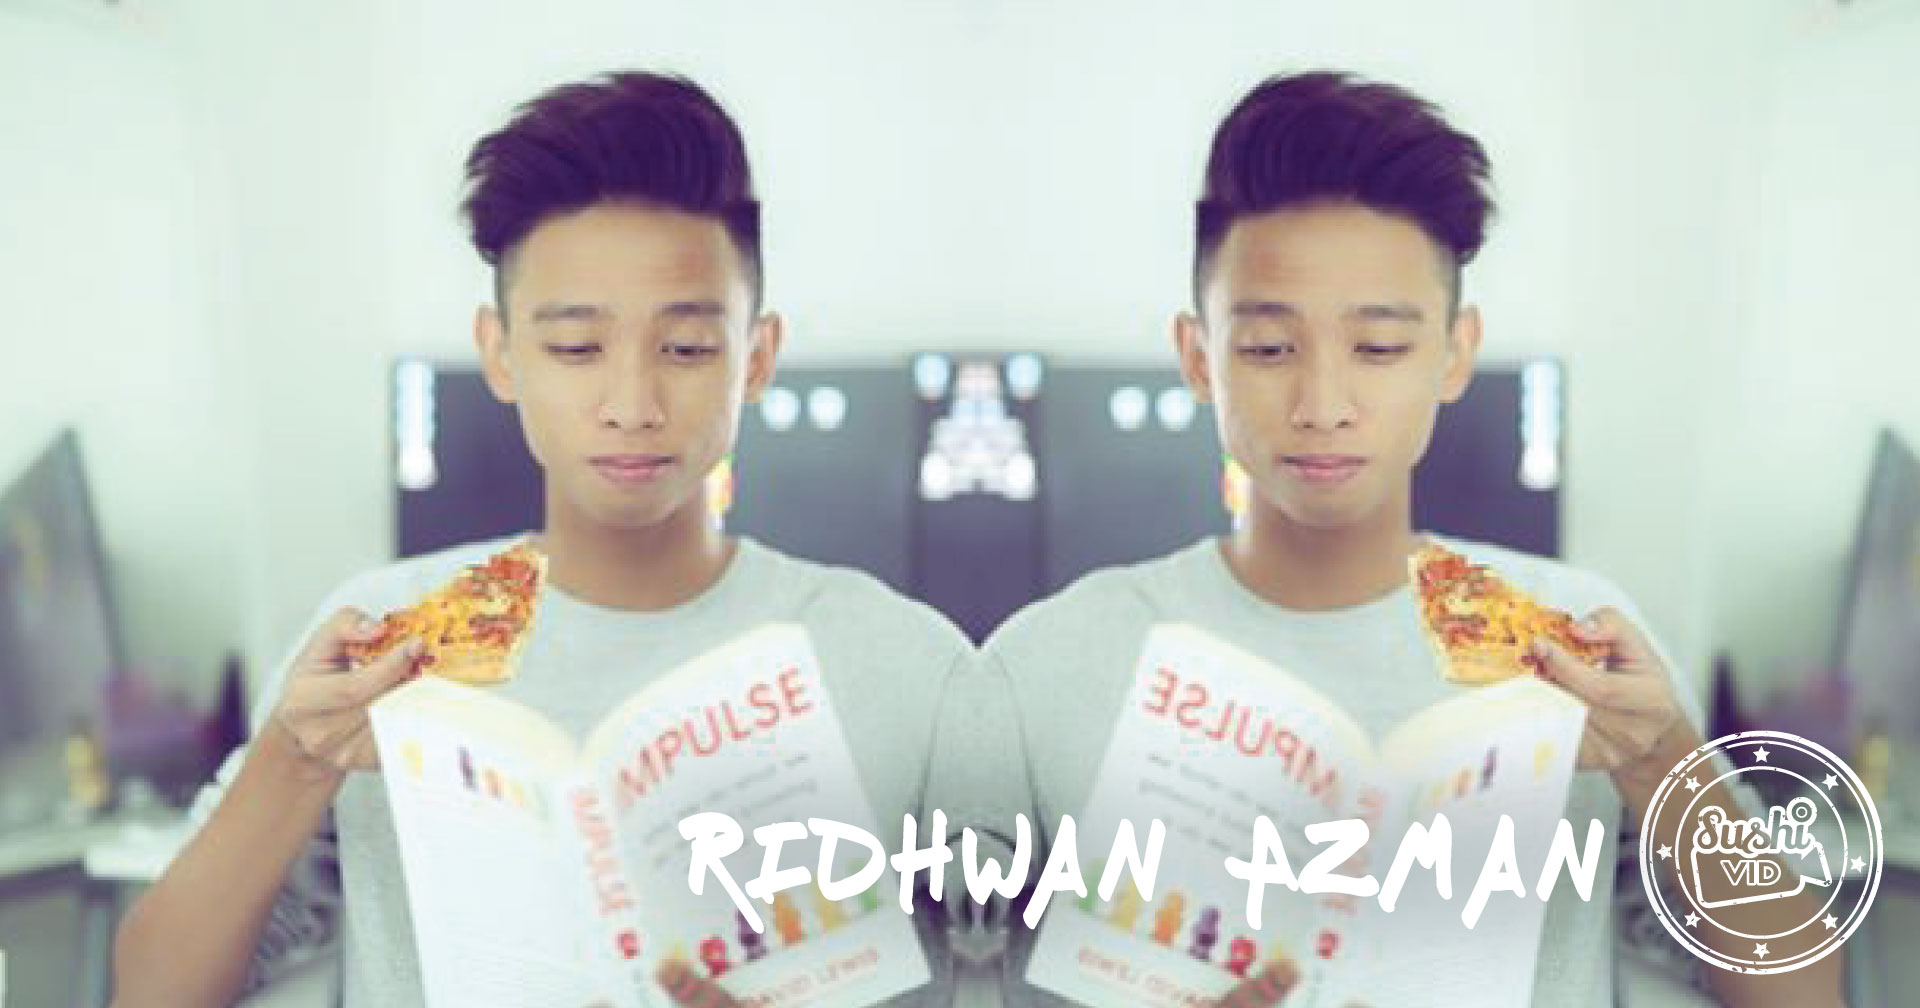 Ridhwan Azman Featured YouTuber